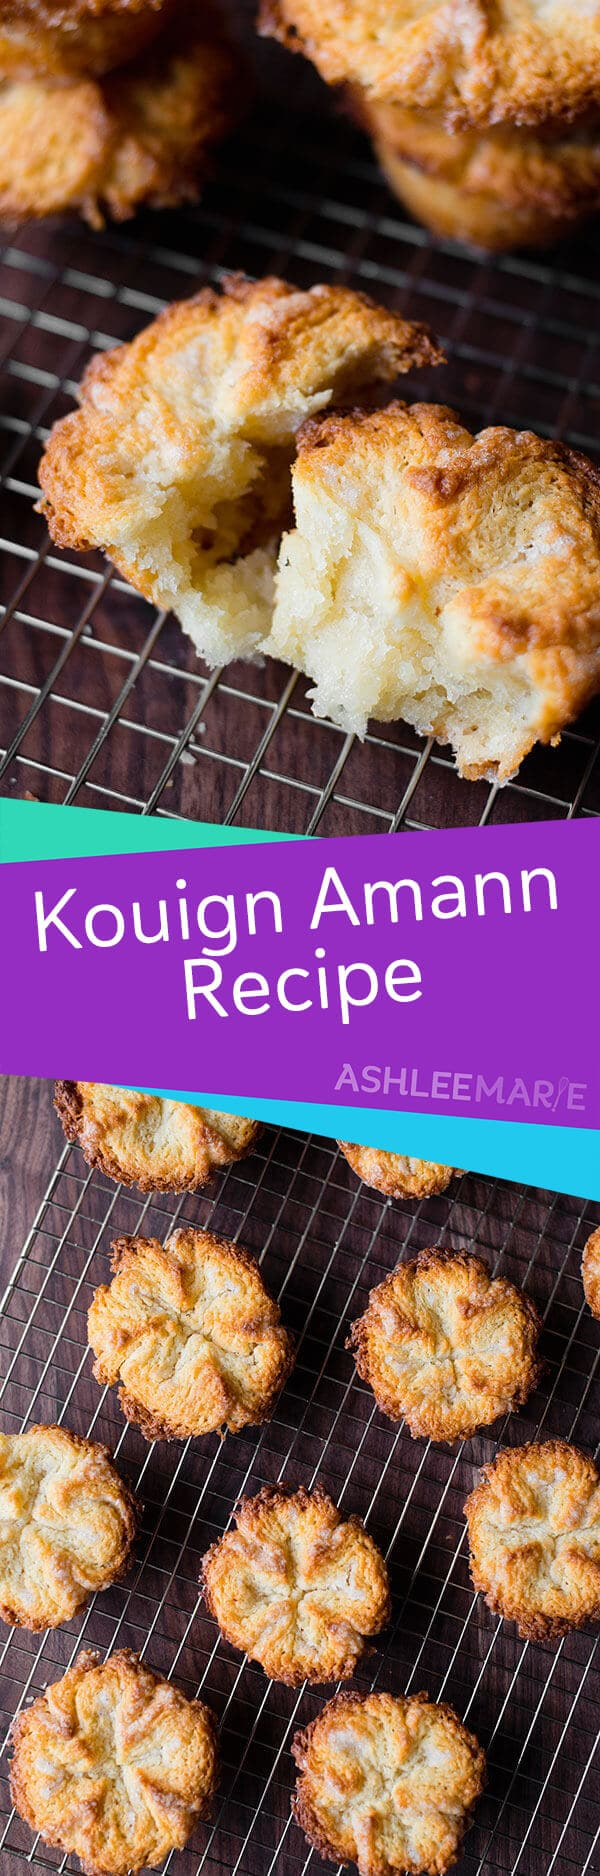 homemade laminated kouign amann recipe and video tutorial